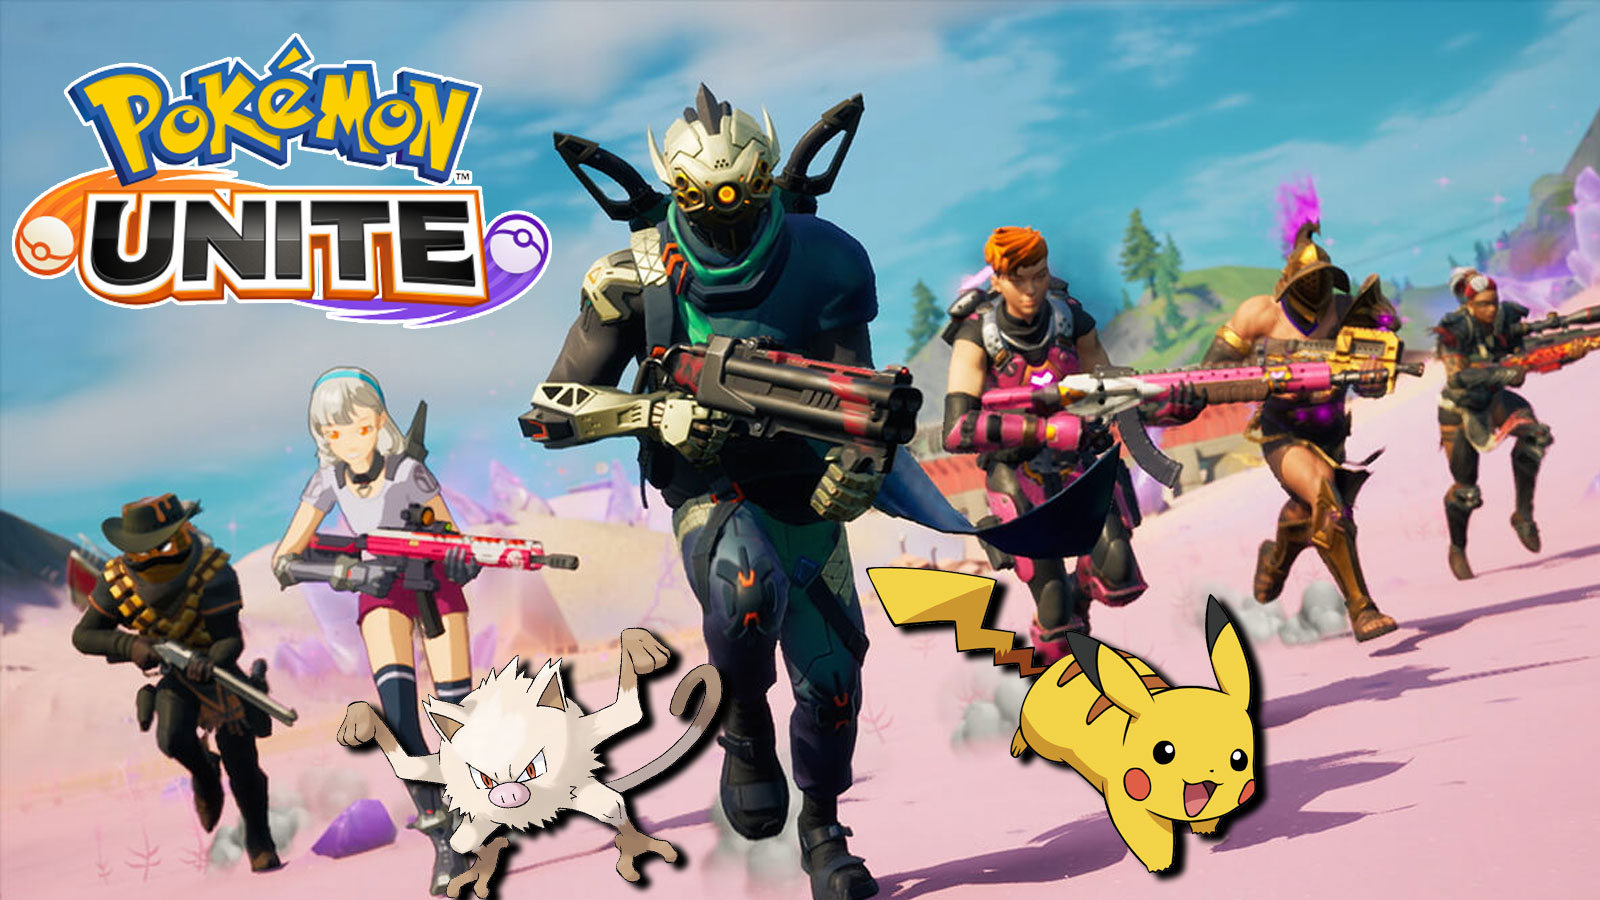 Screenshot of Fortnite with Pokemon characters.